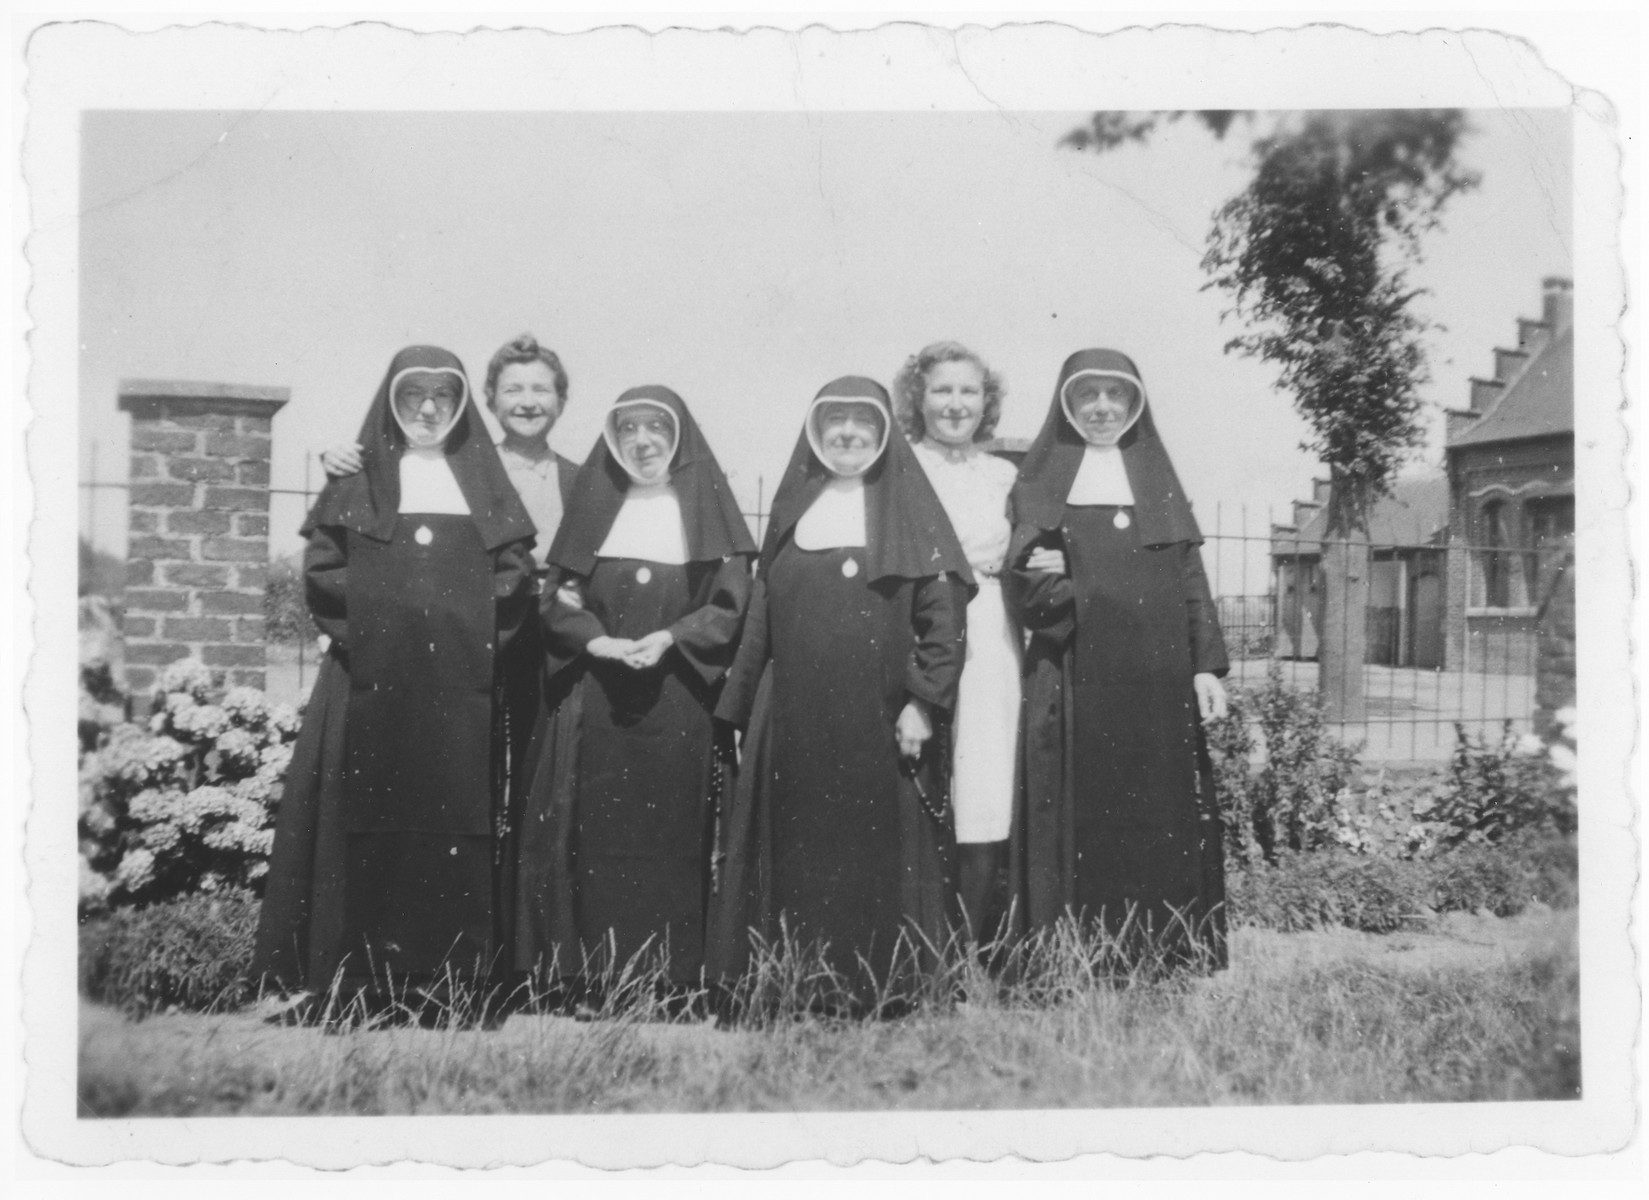 Ursula Klipstein and her mother pose with Sisters Catherine, Odile, Elisabette and Huberte at the Soeurs de Sainte Marie convent near Braine-l'Alleud, where Ursula was hidden during the war.